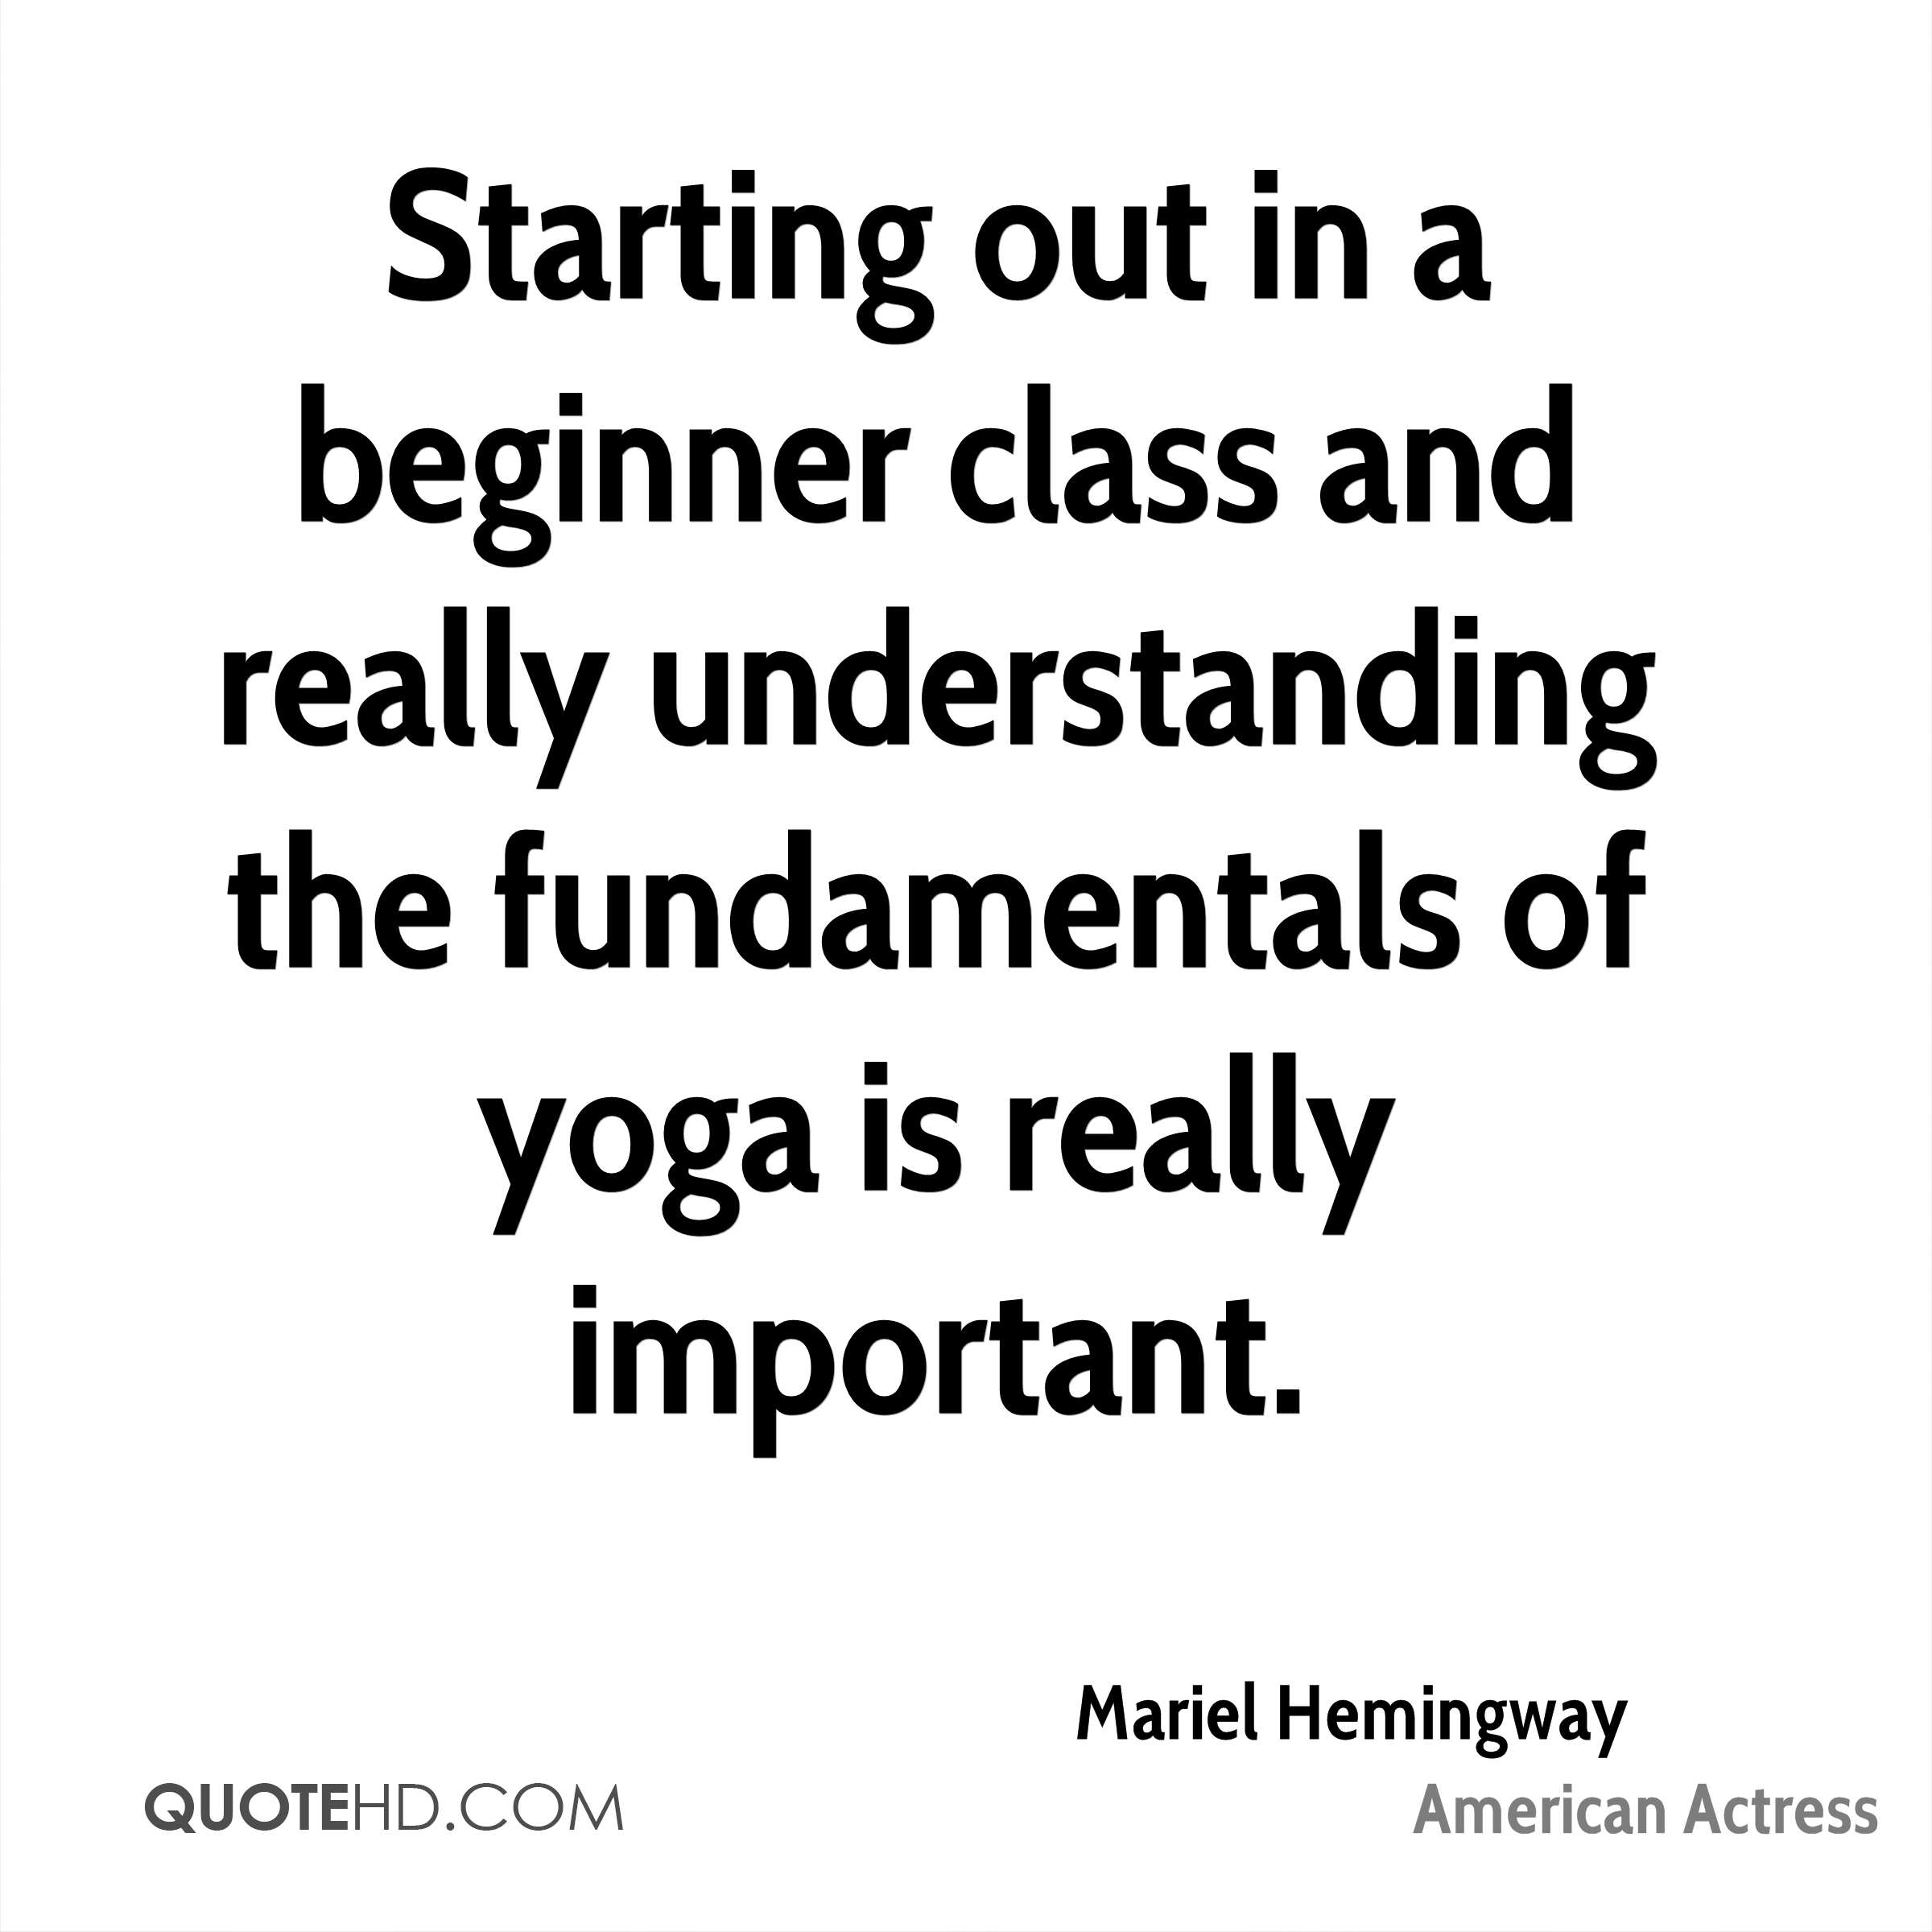 Starting out in a beginner class and really understanding the fundamentals of yoga is really important.